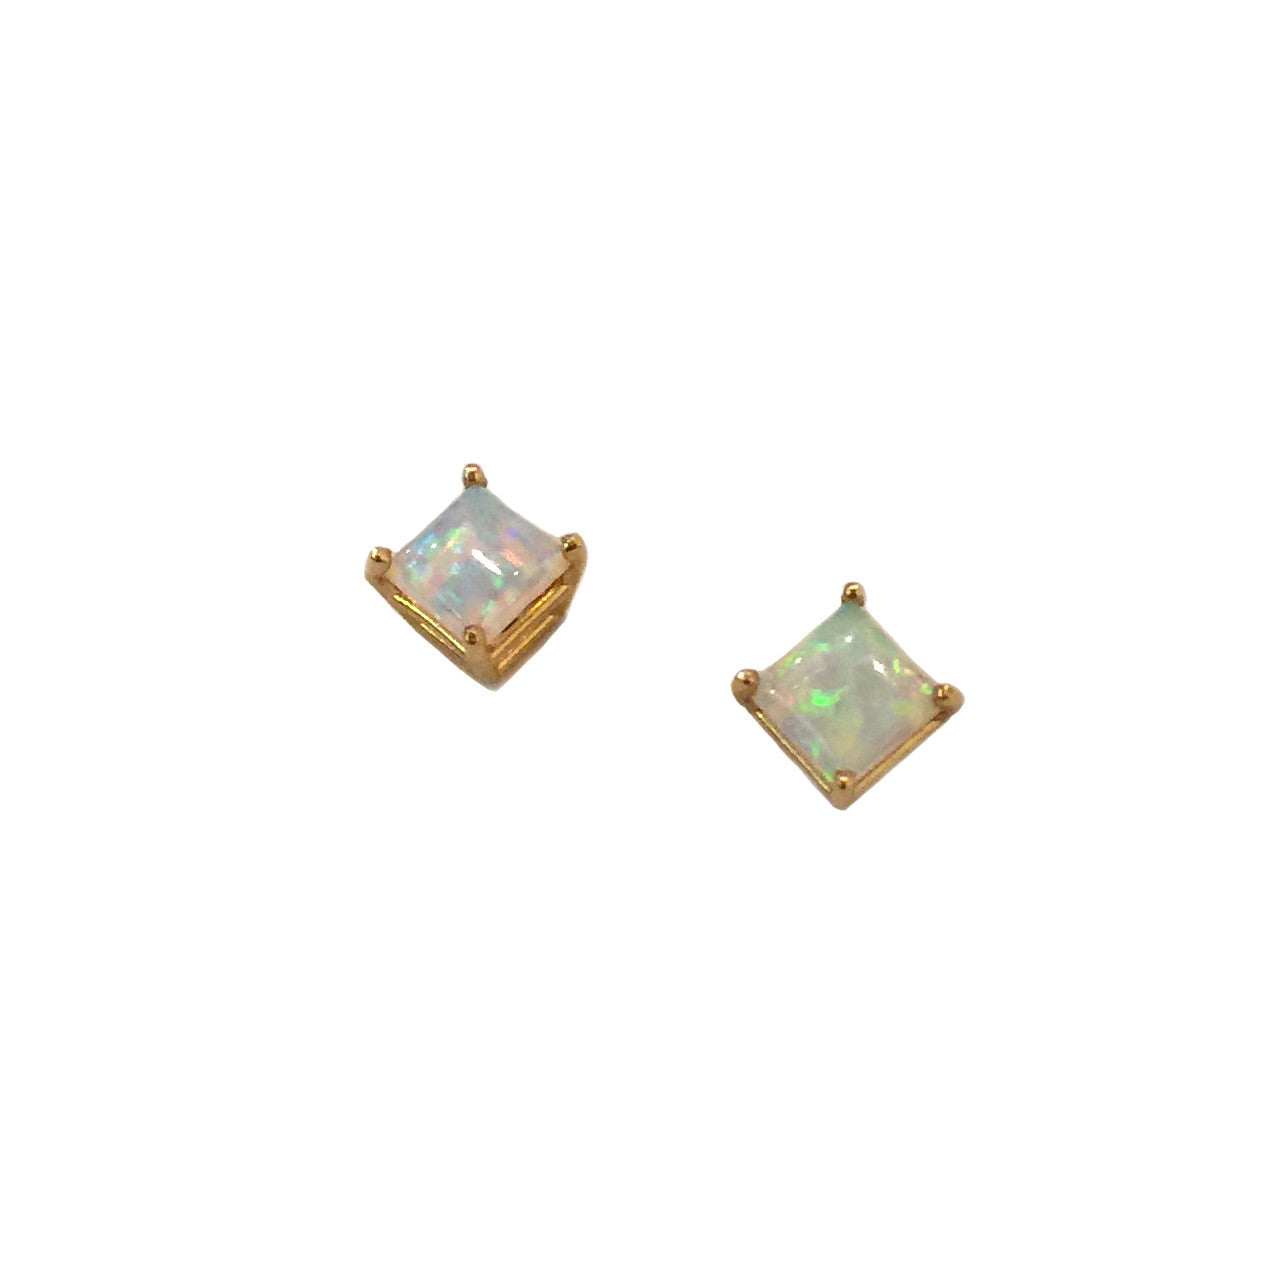 14KT GOLD OPAL SQUARE STUDS